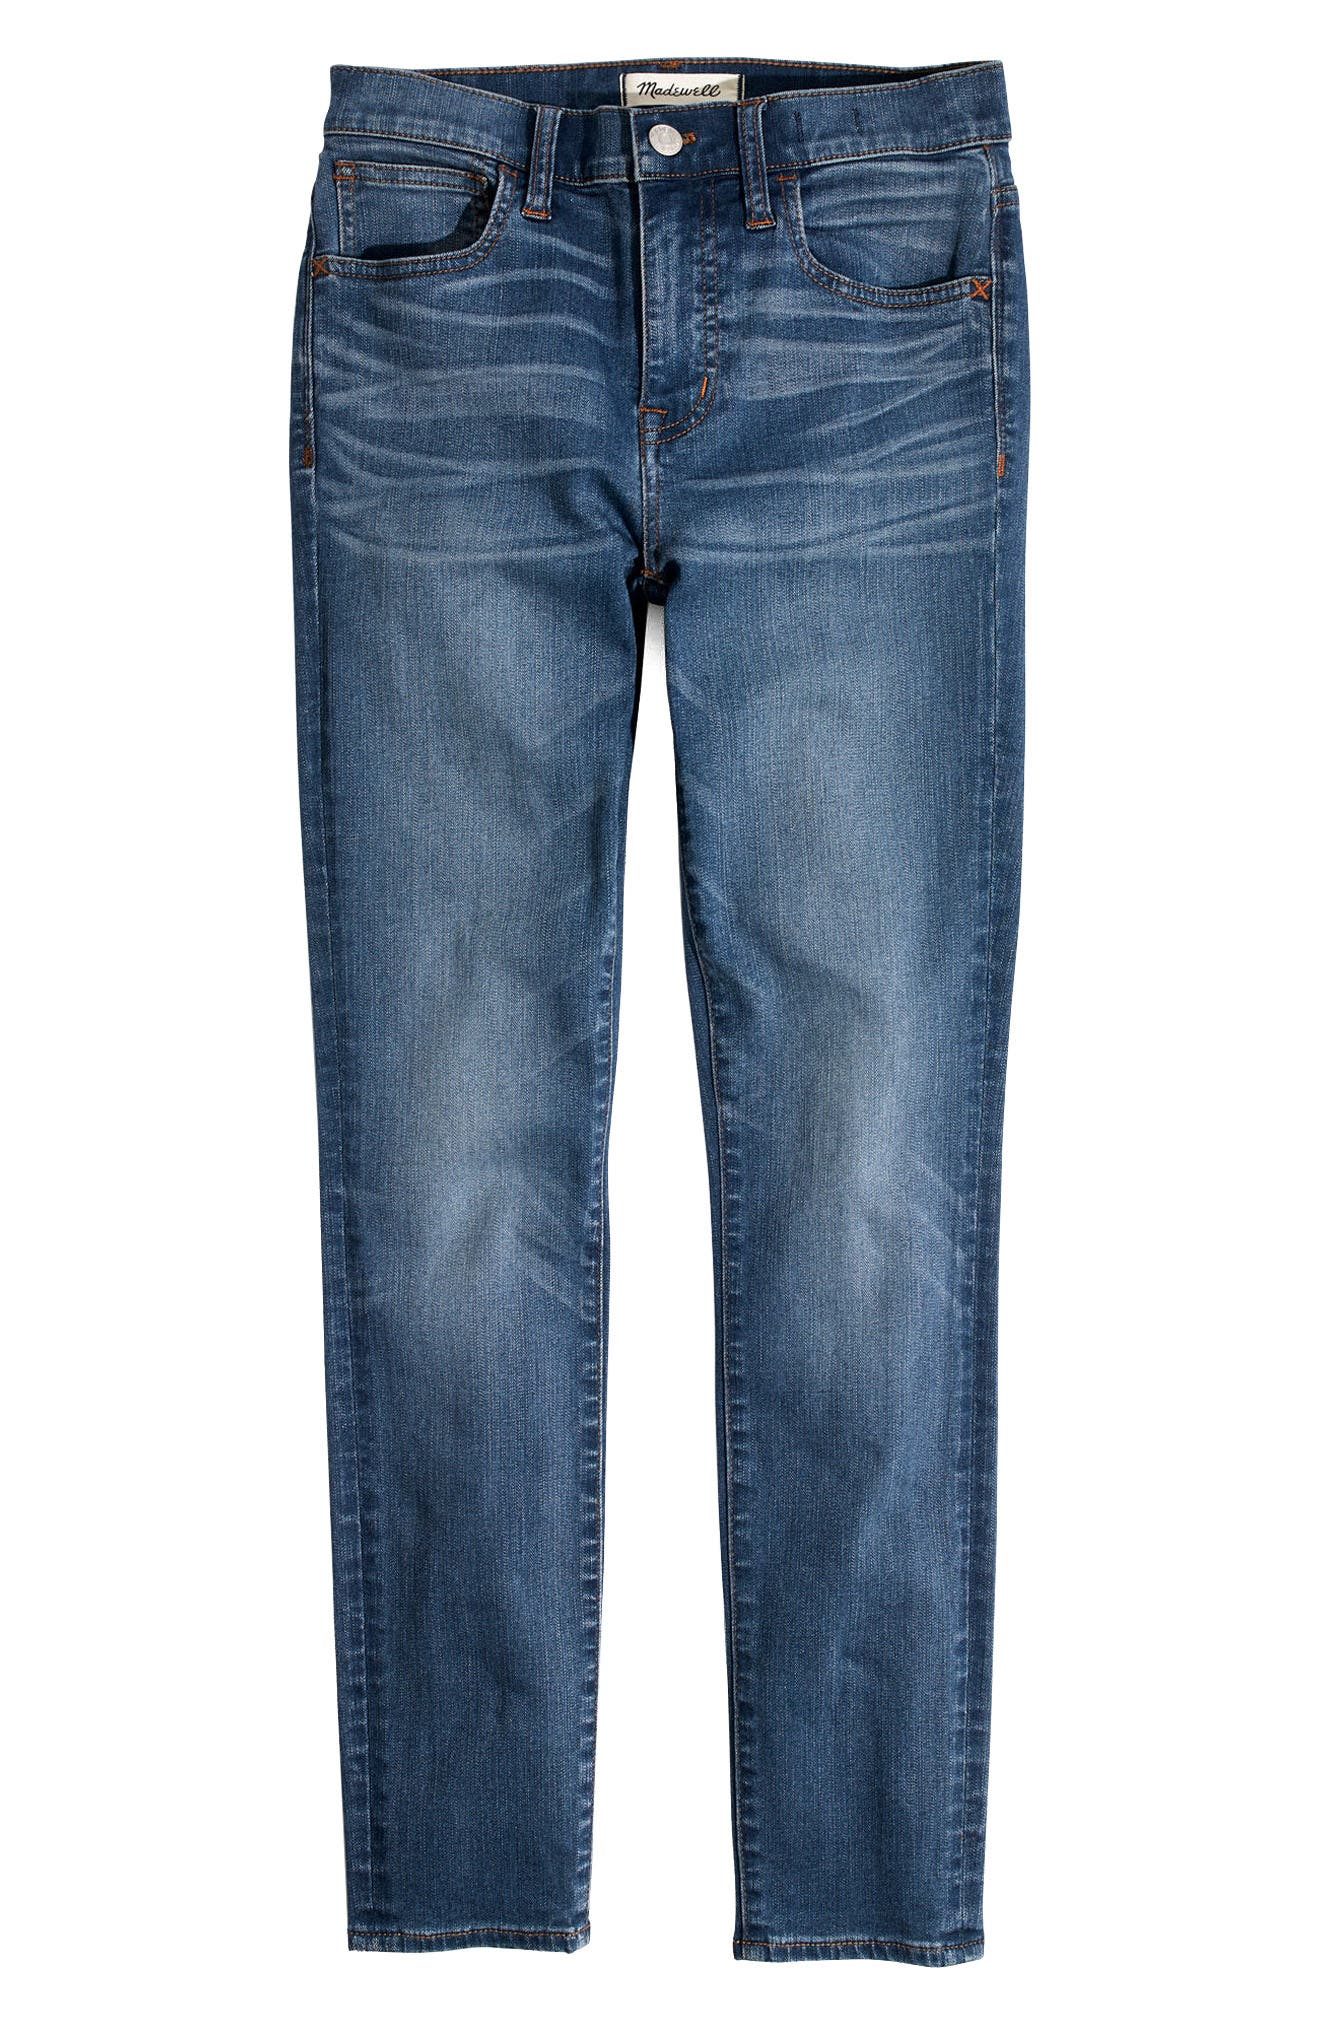 Roadtripper Crop Skinny Jeans,                             Alternate thumbnail 4, color,                             DECLAN WASH